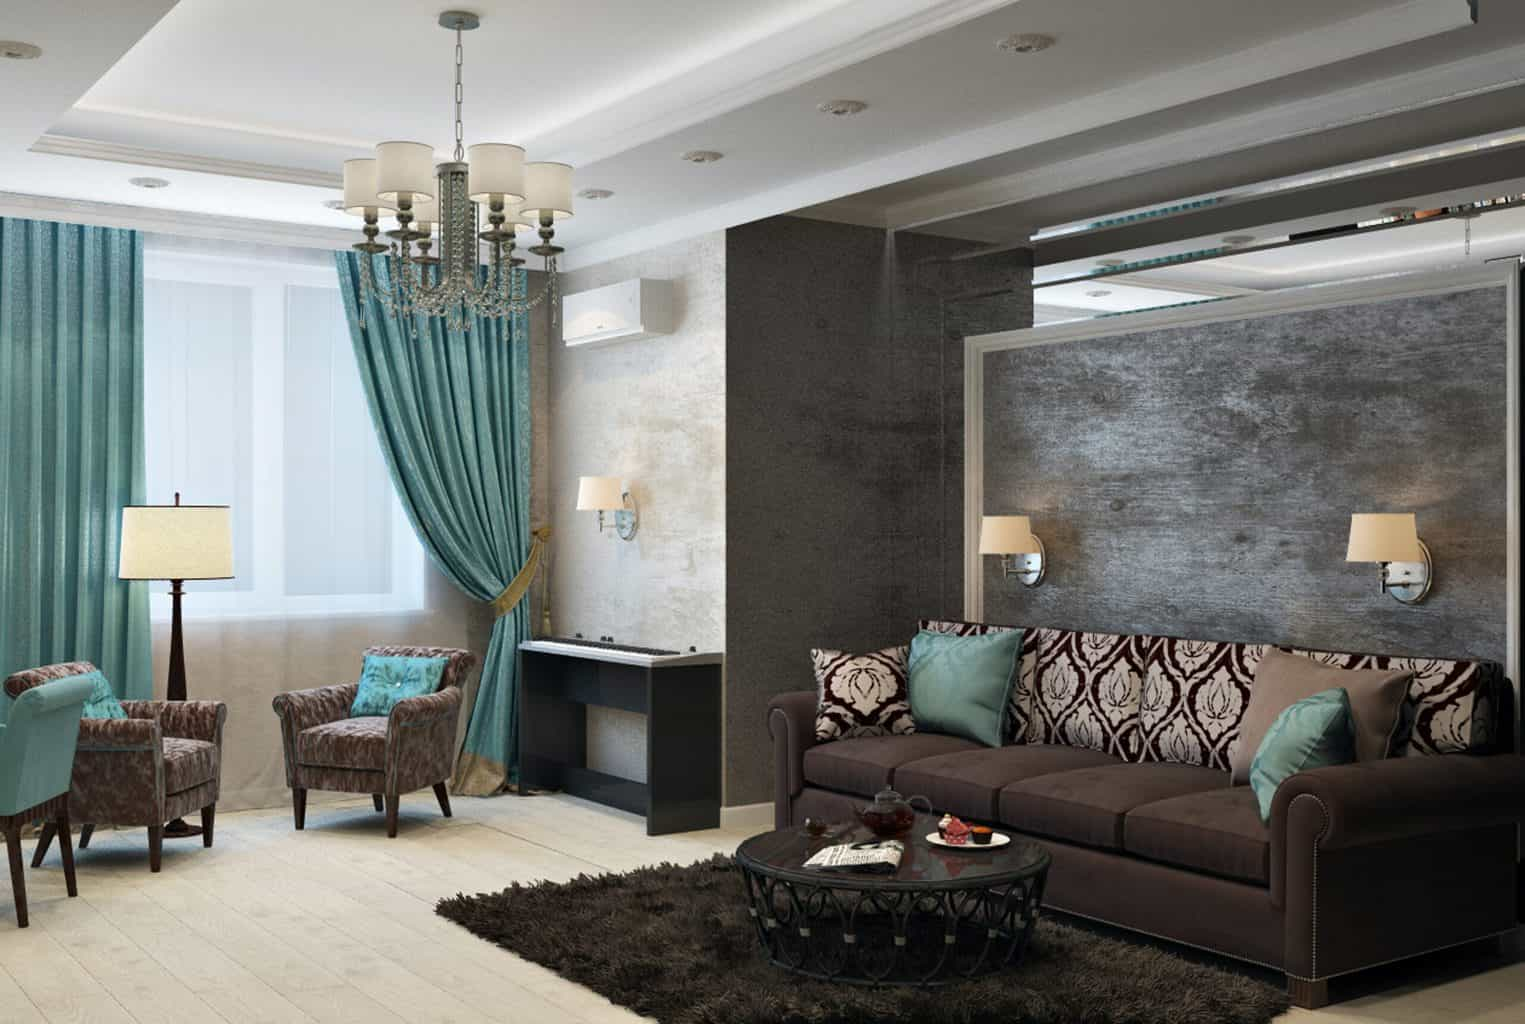 A dark toned living room with sofa and a blue green curtain